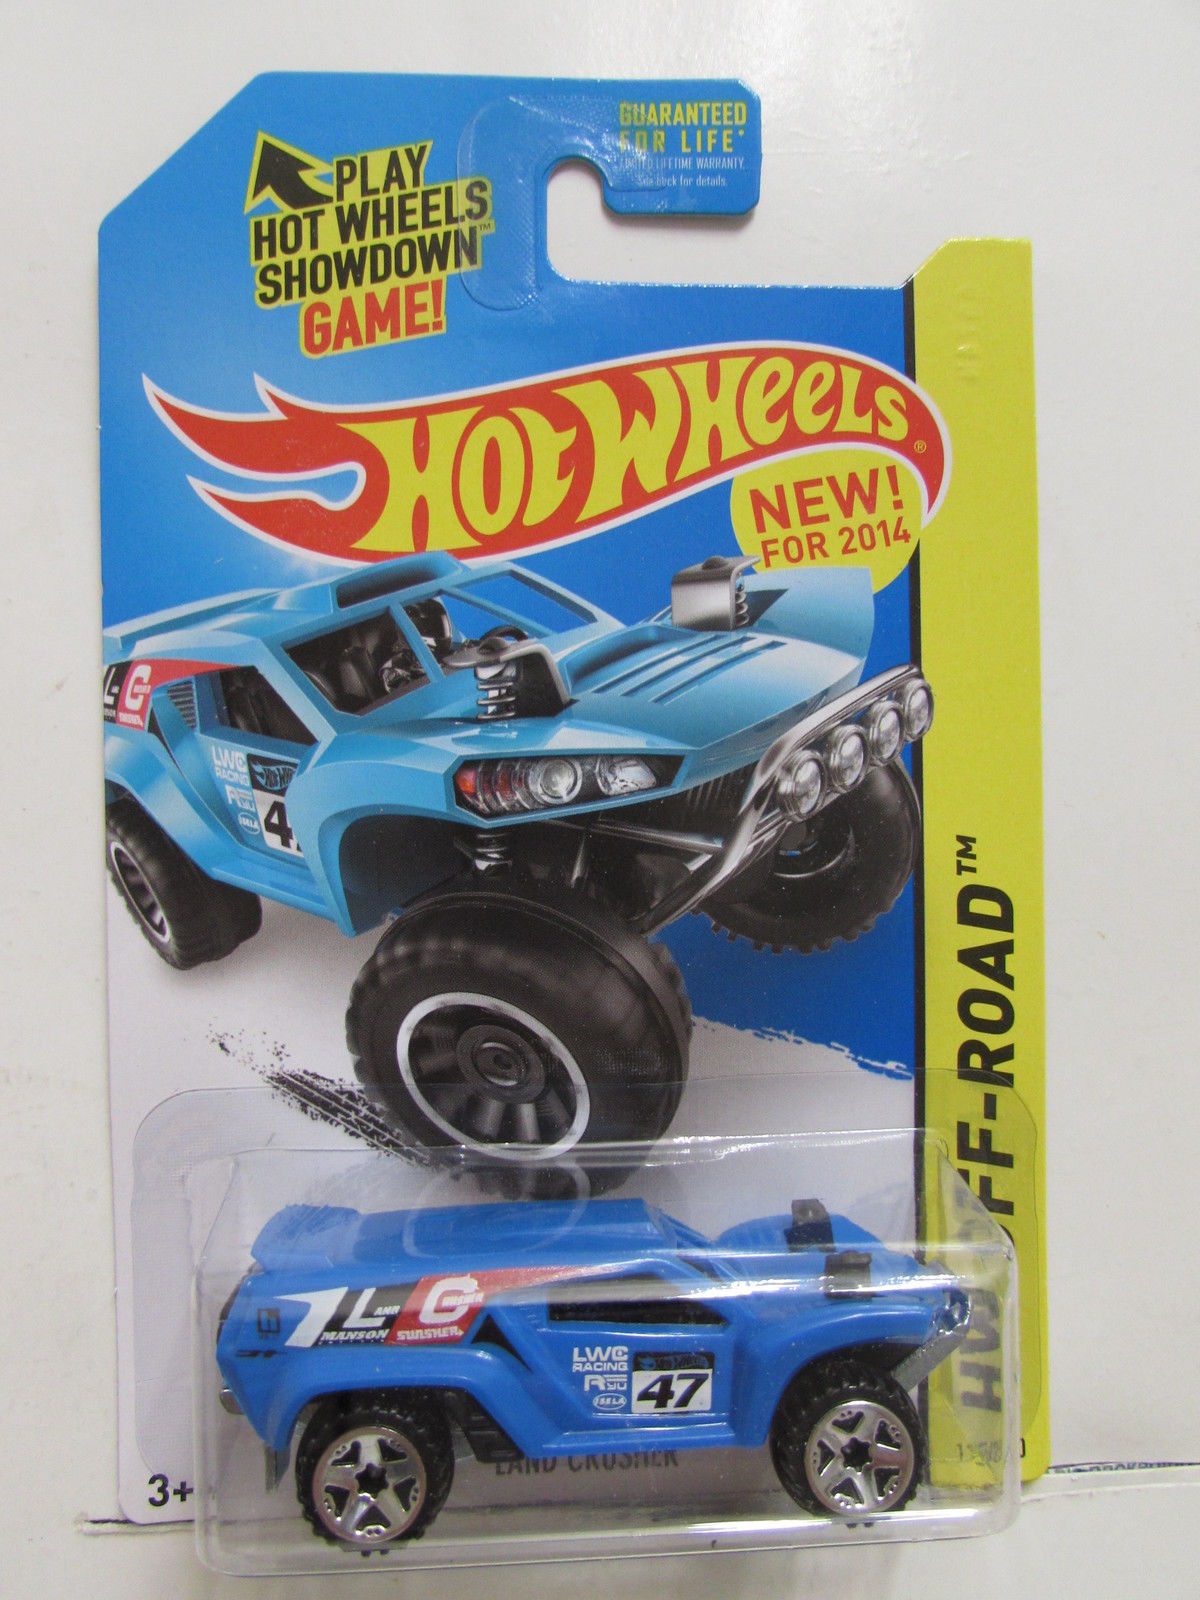 HOT WHEELS 2014 HW OFF ROAD - OFF TRACK LAND CRUISHER BLUE